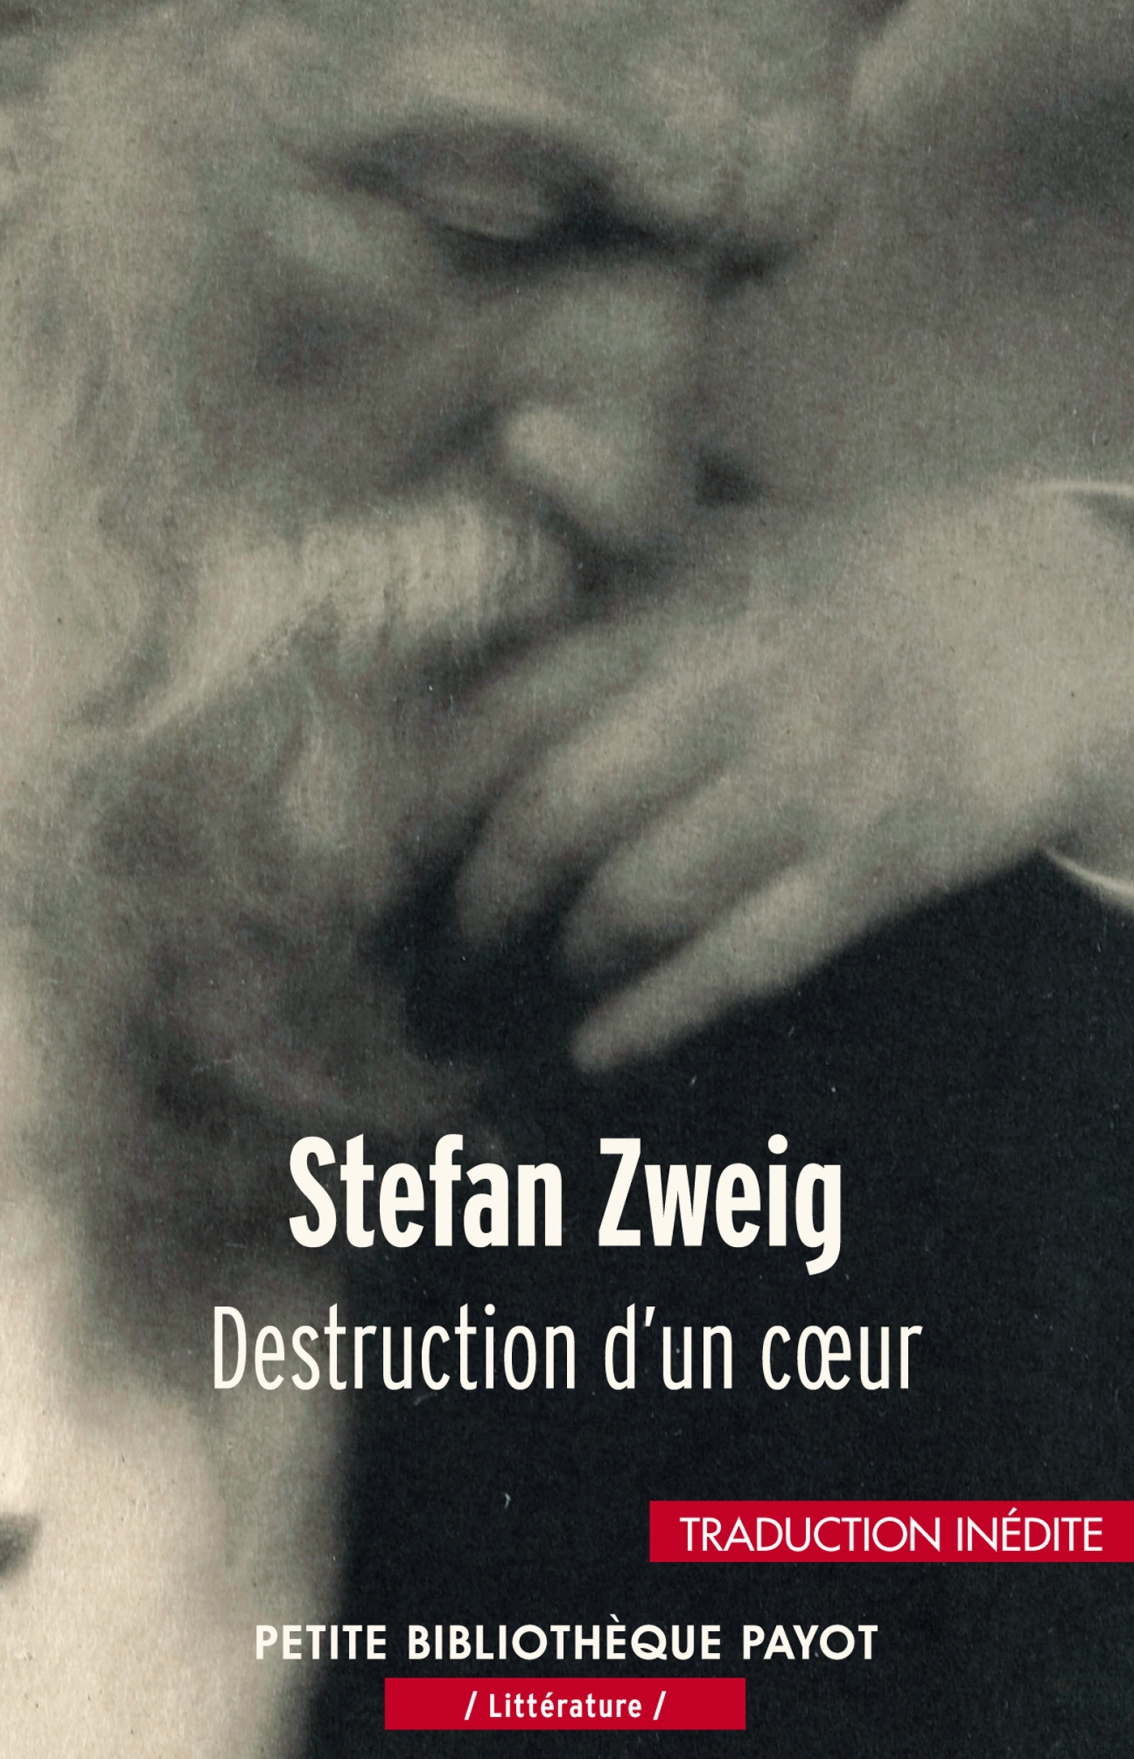 Destruction d'un cœur